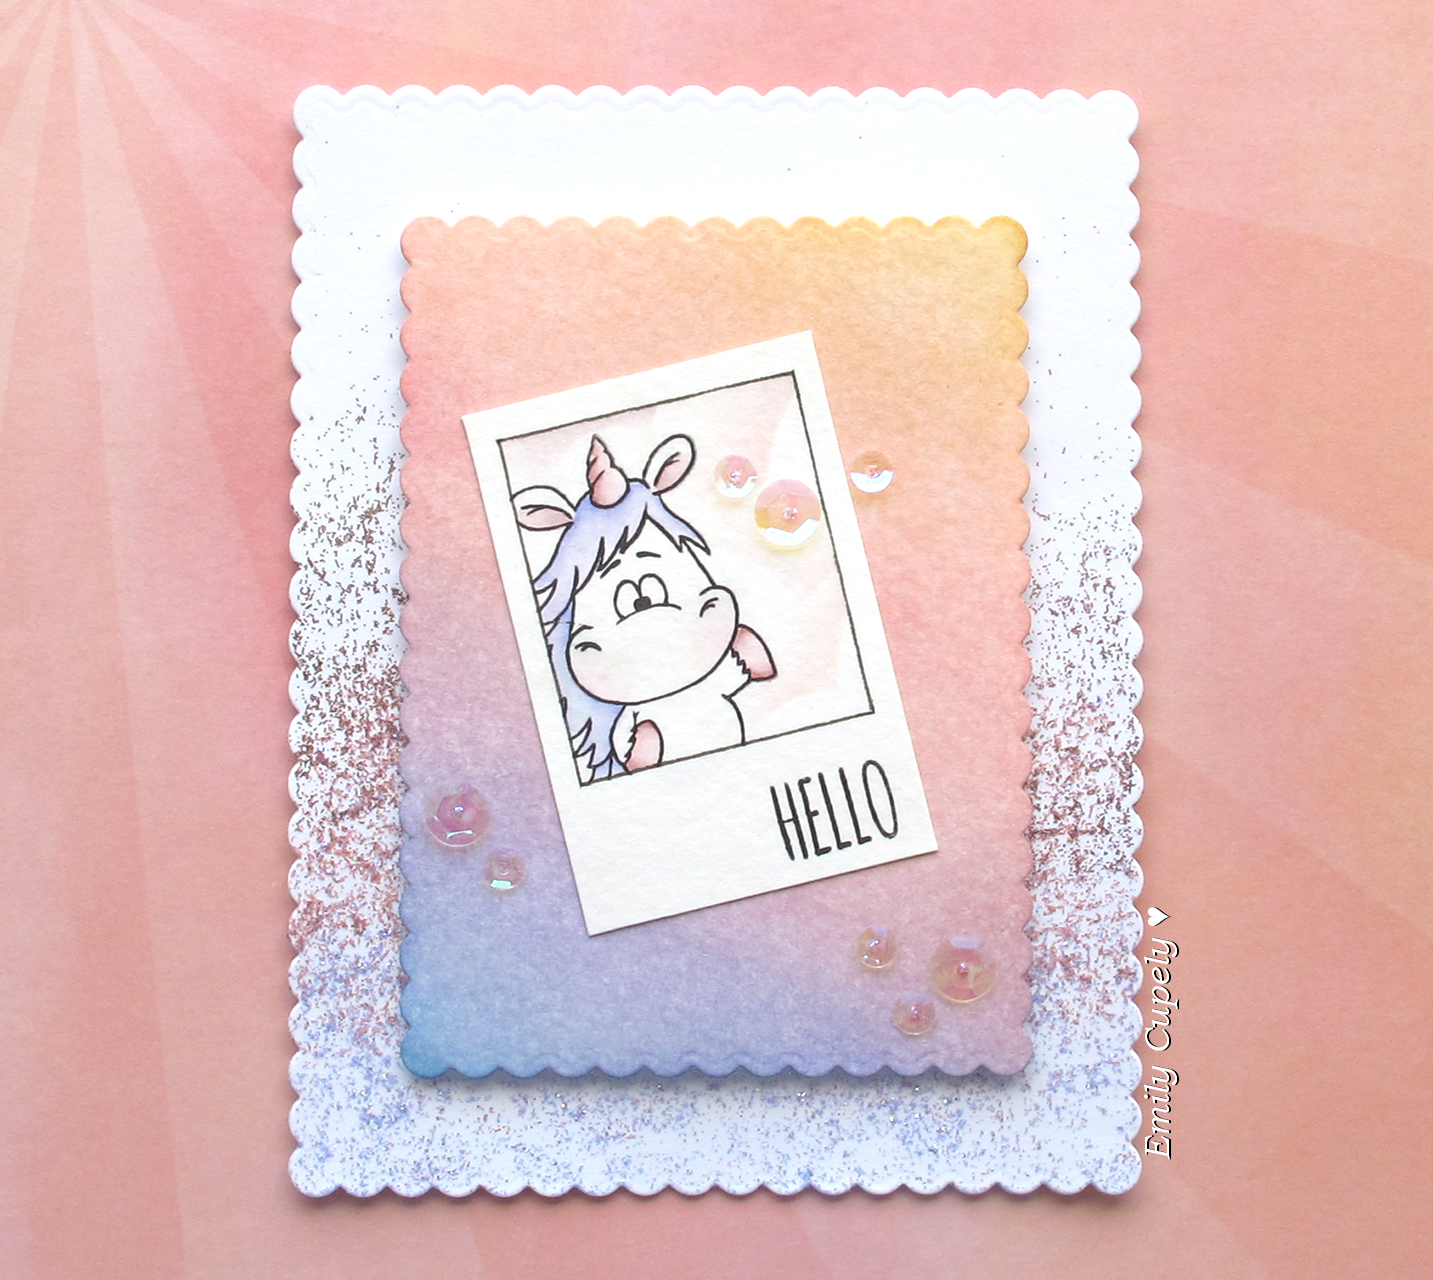 Gerda Steiner Designs, LLC: Video: Polaroid Frame Using Masking